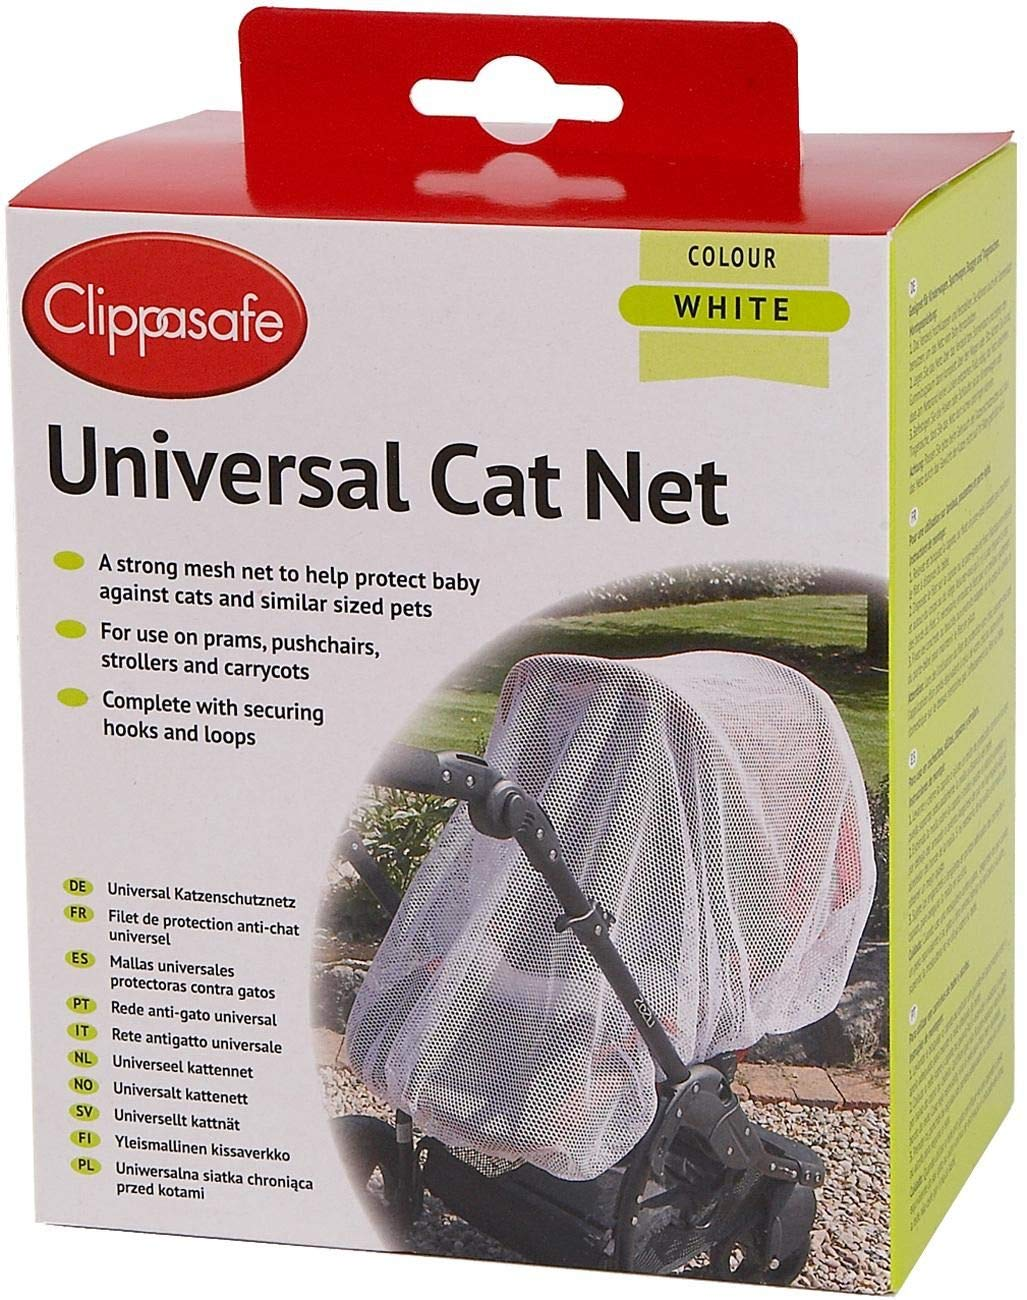 Clippasafe Pram Pushchair Universal Cat Net